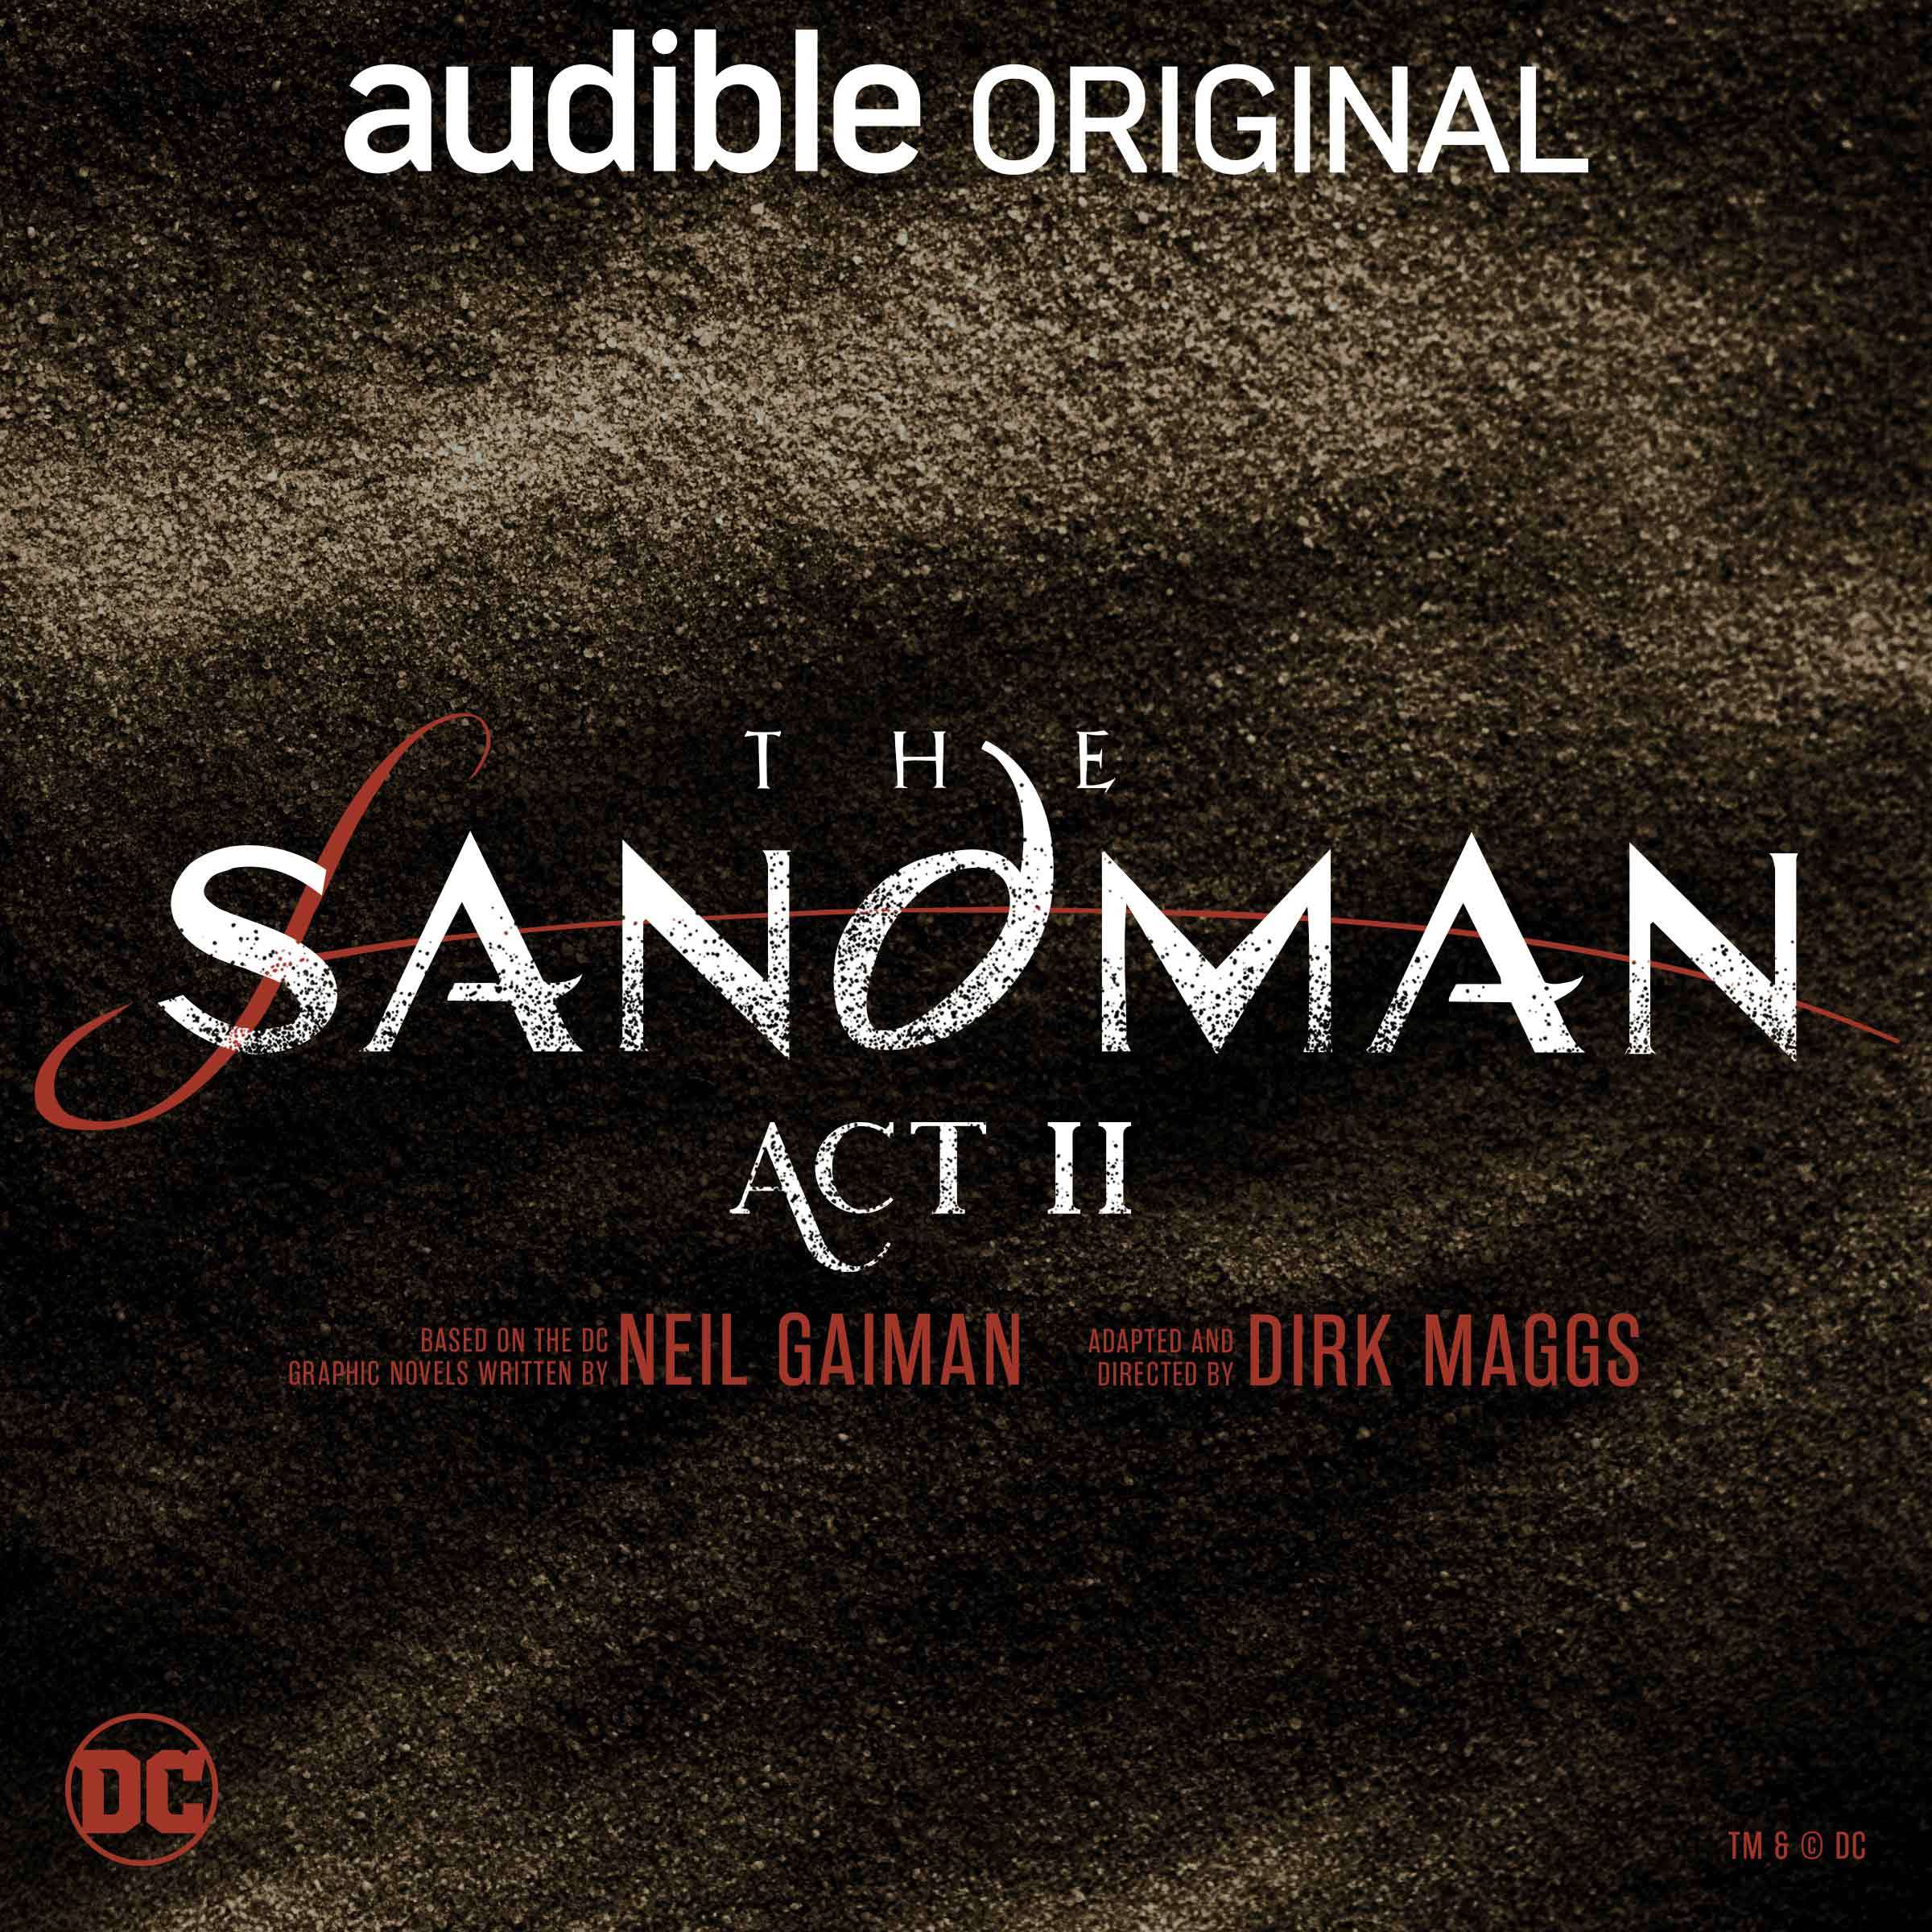 Gaiman's masterpiece comes to life in exclusive clip of James McAvoy, Kat Dennings in Audible's 'The Sandman: Act II'